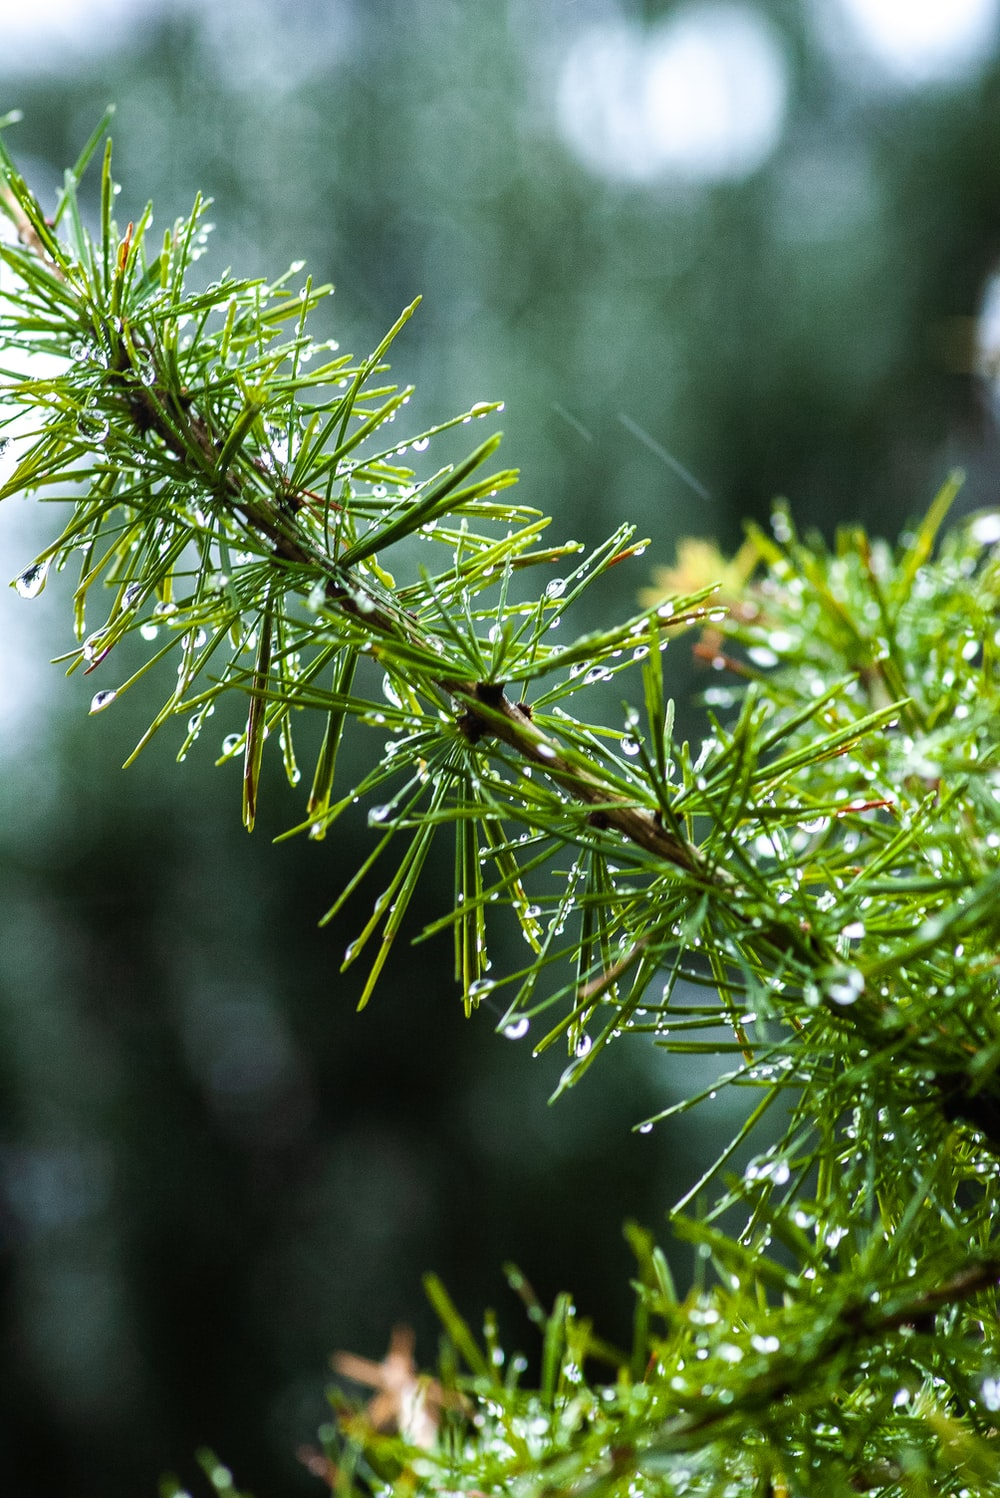 selected focus photography of green pine tree leaves